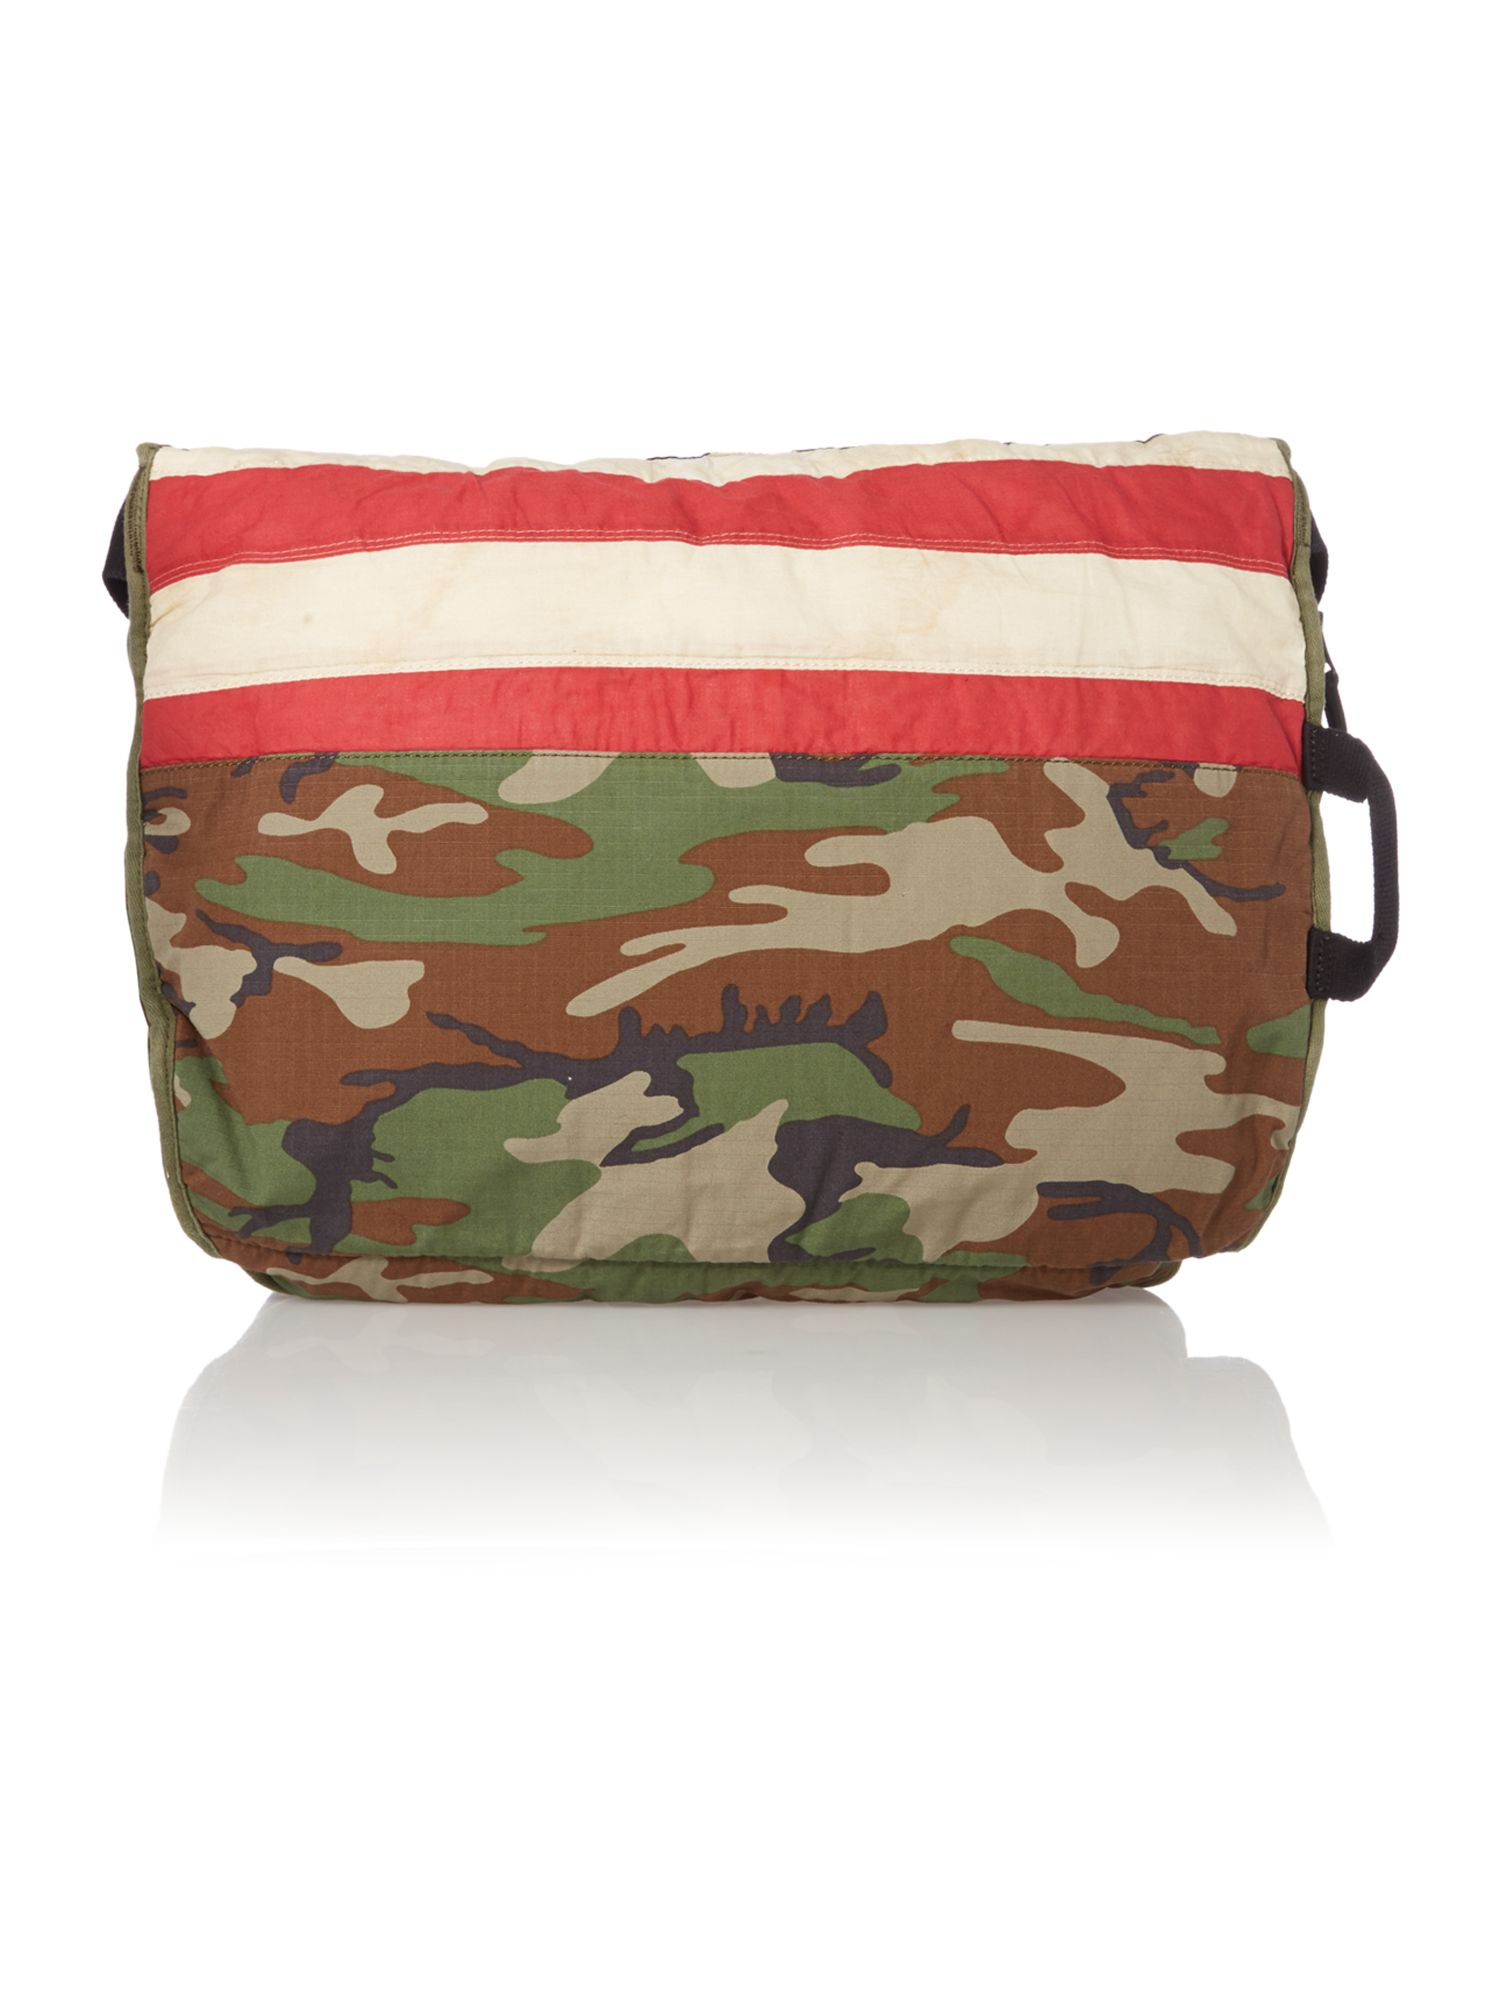 Flag camo messenger bag